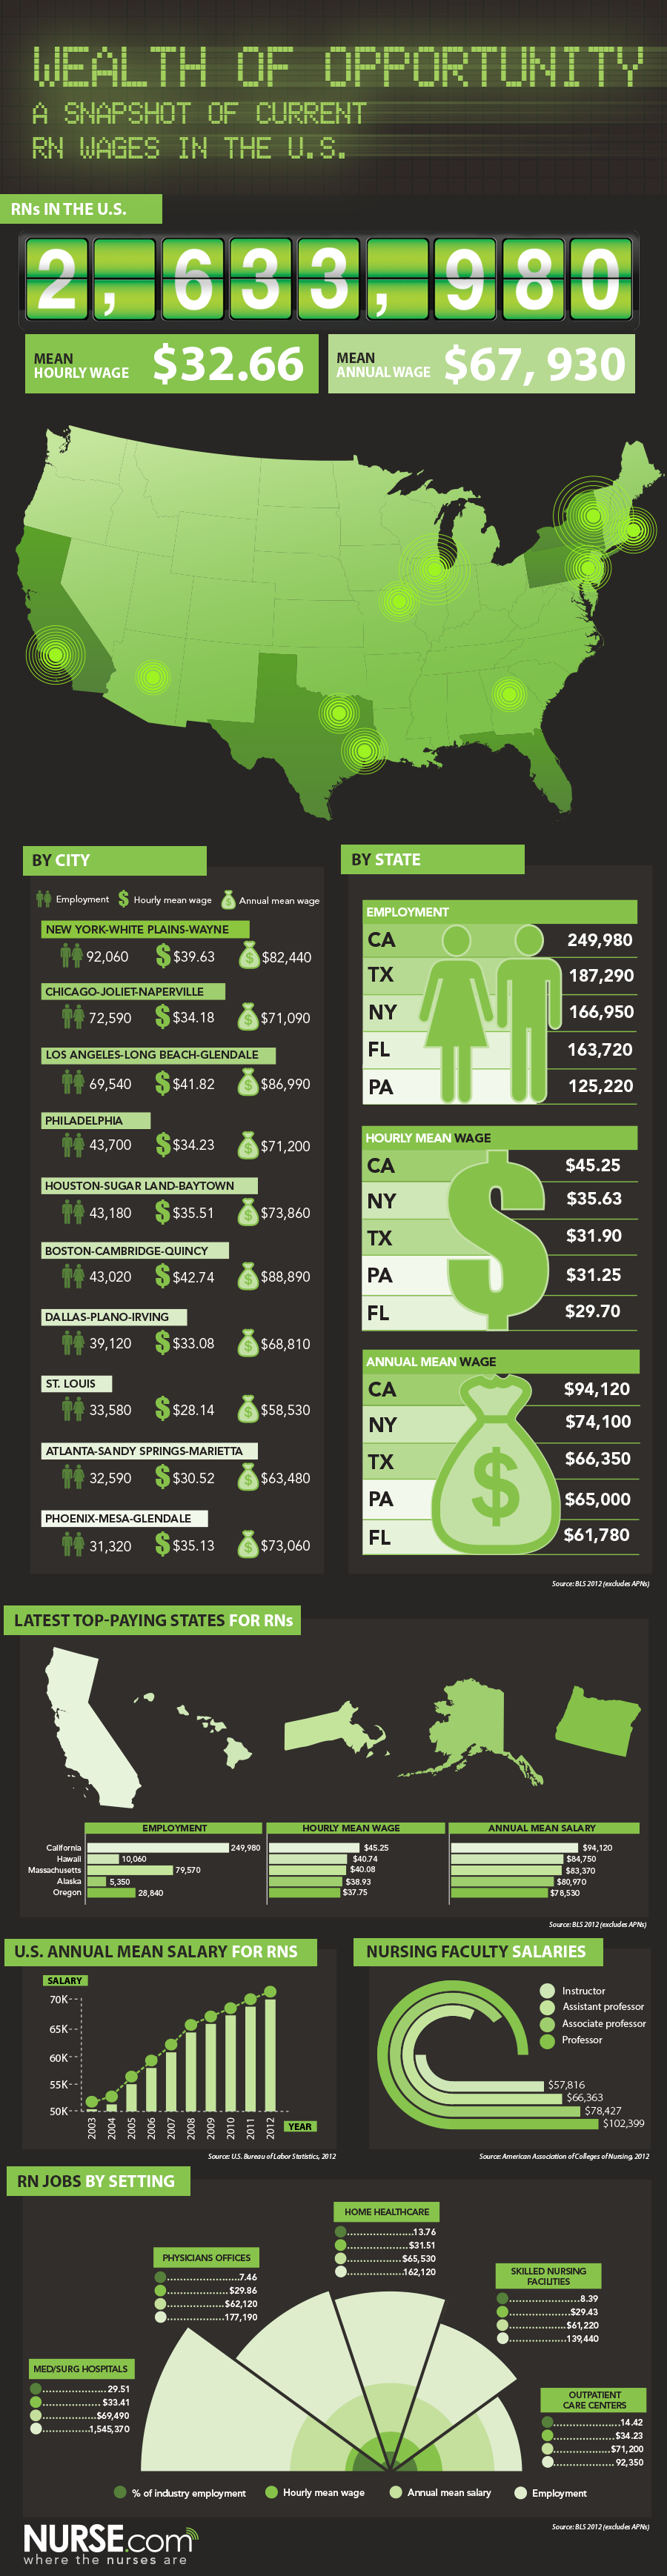 RN Salaries in the USA